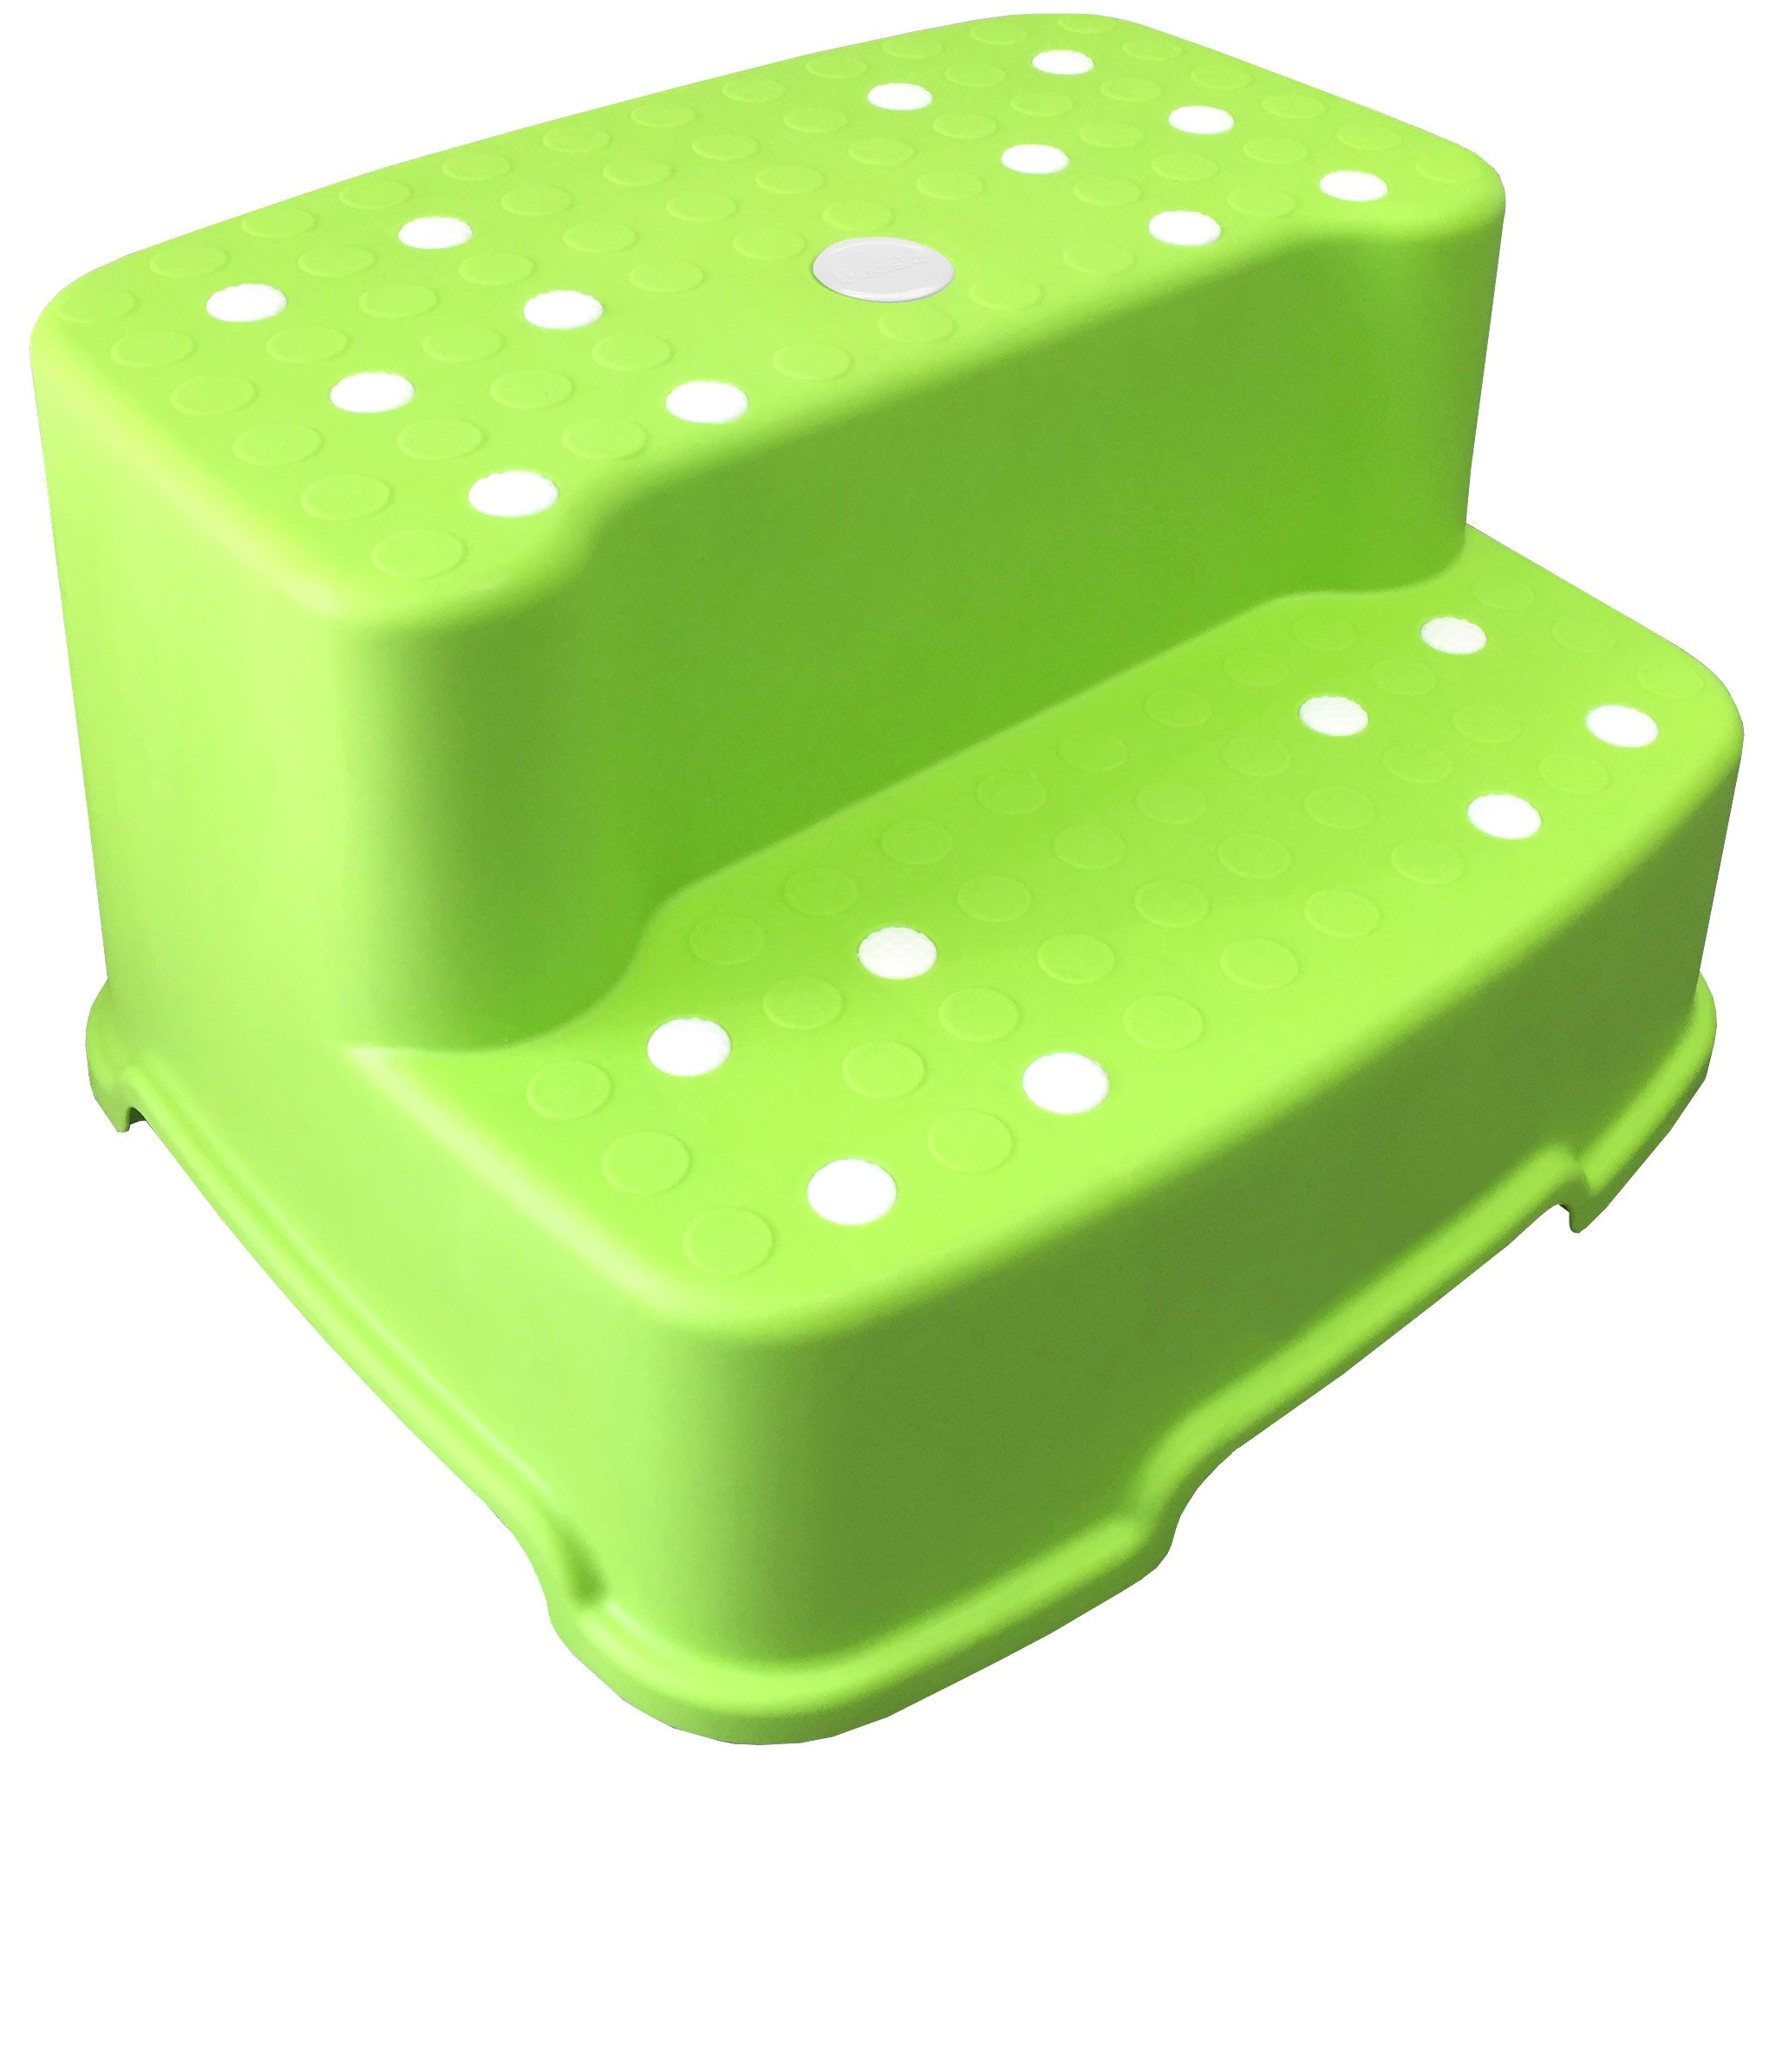 Tenby Living Jumbo Step Stool with Removable Non-Slip Caps and Rubber Grips, Green, Extra-Wide/Extra-Tall